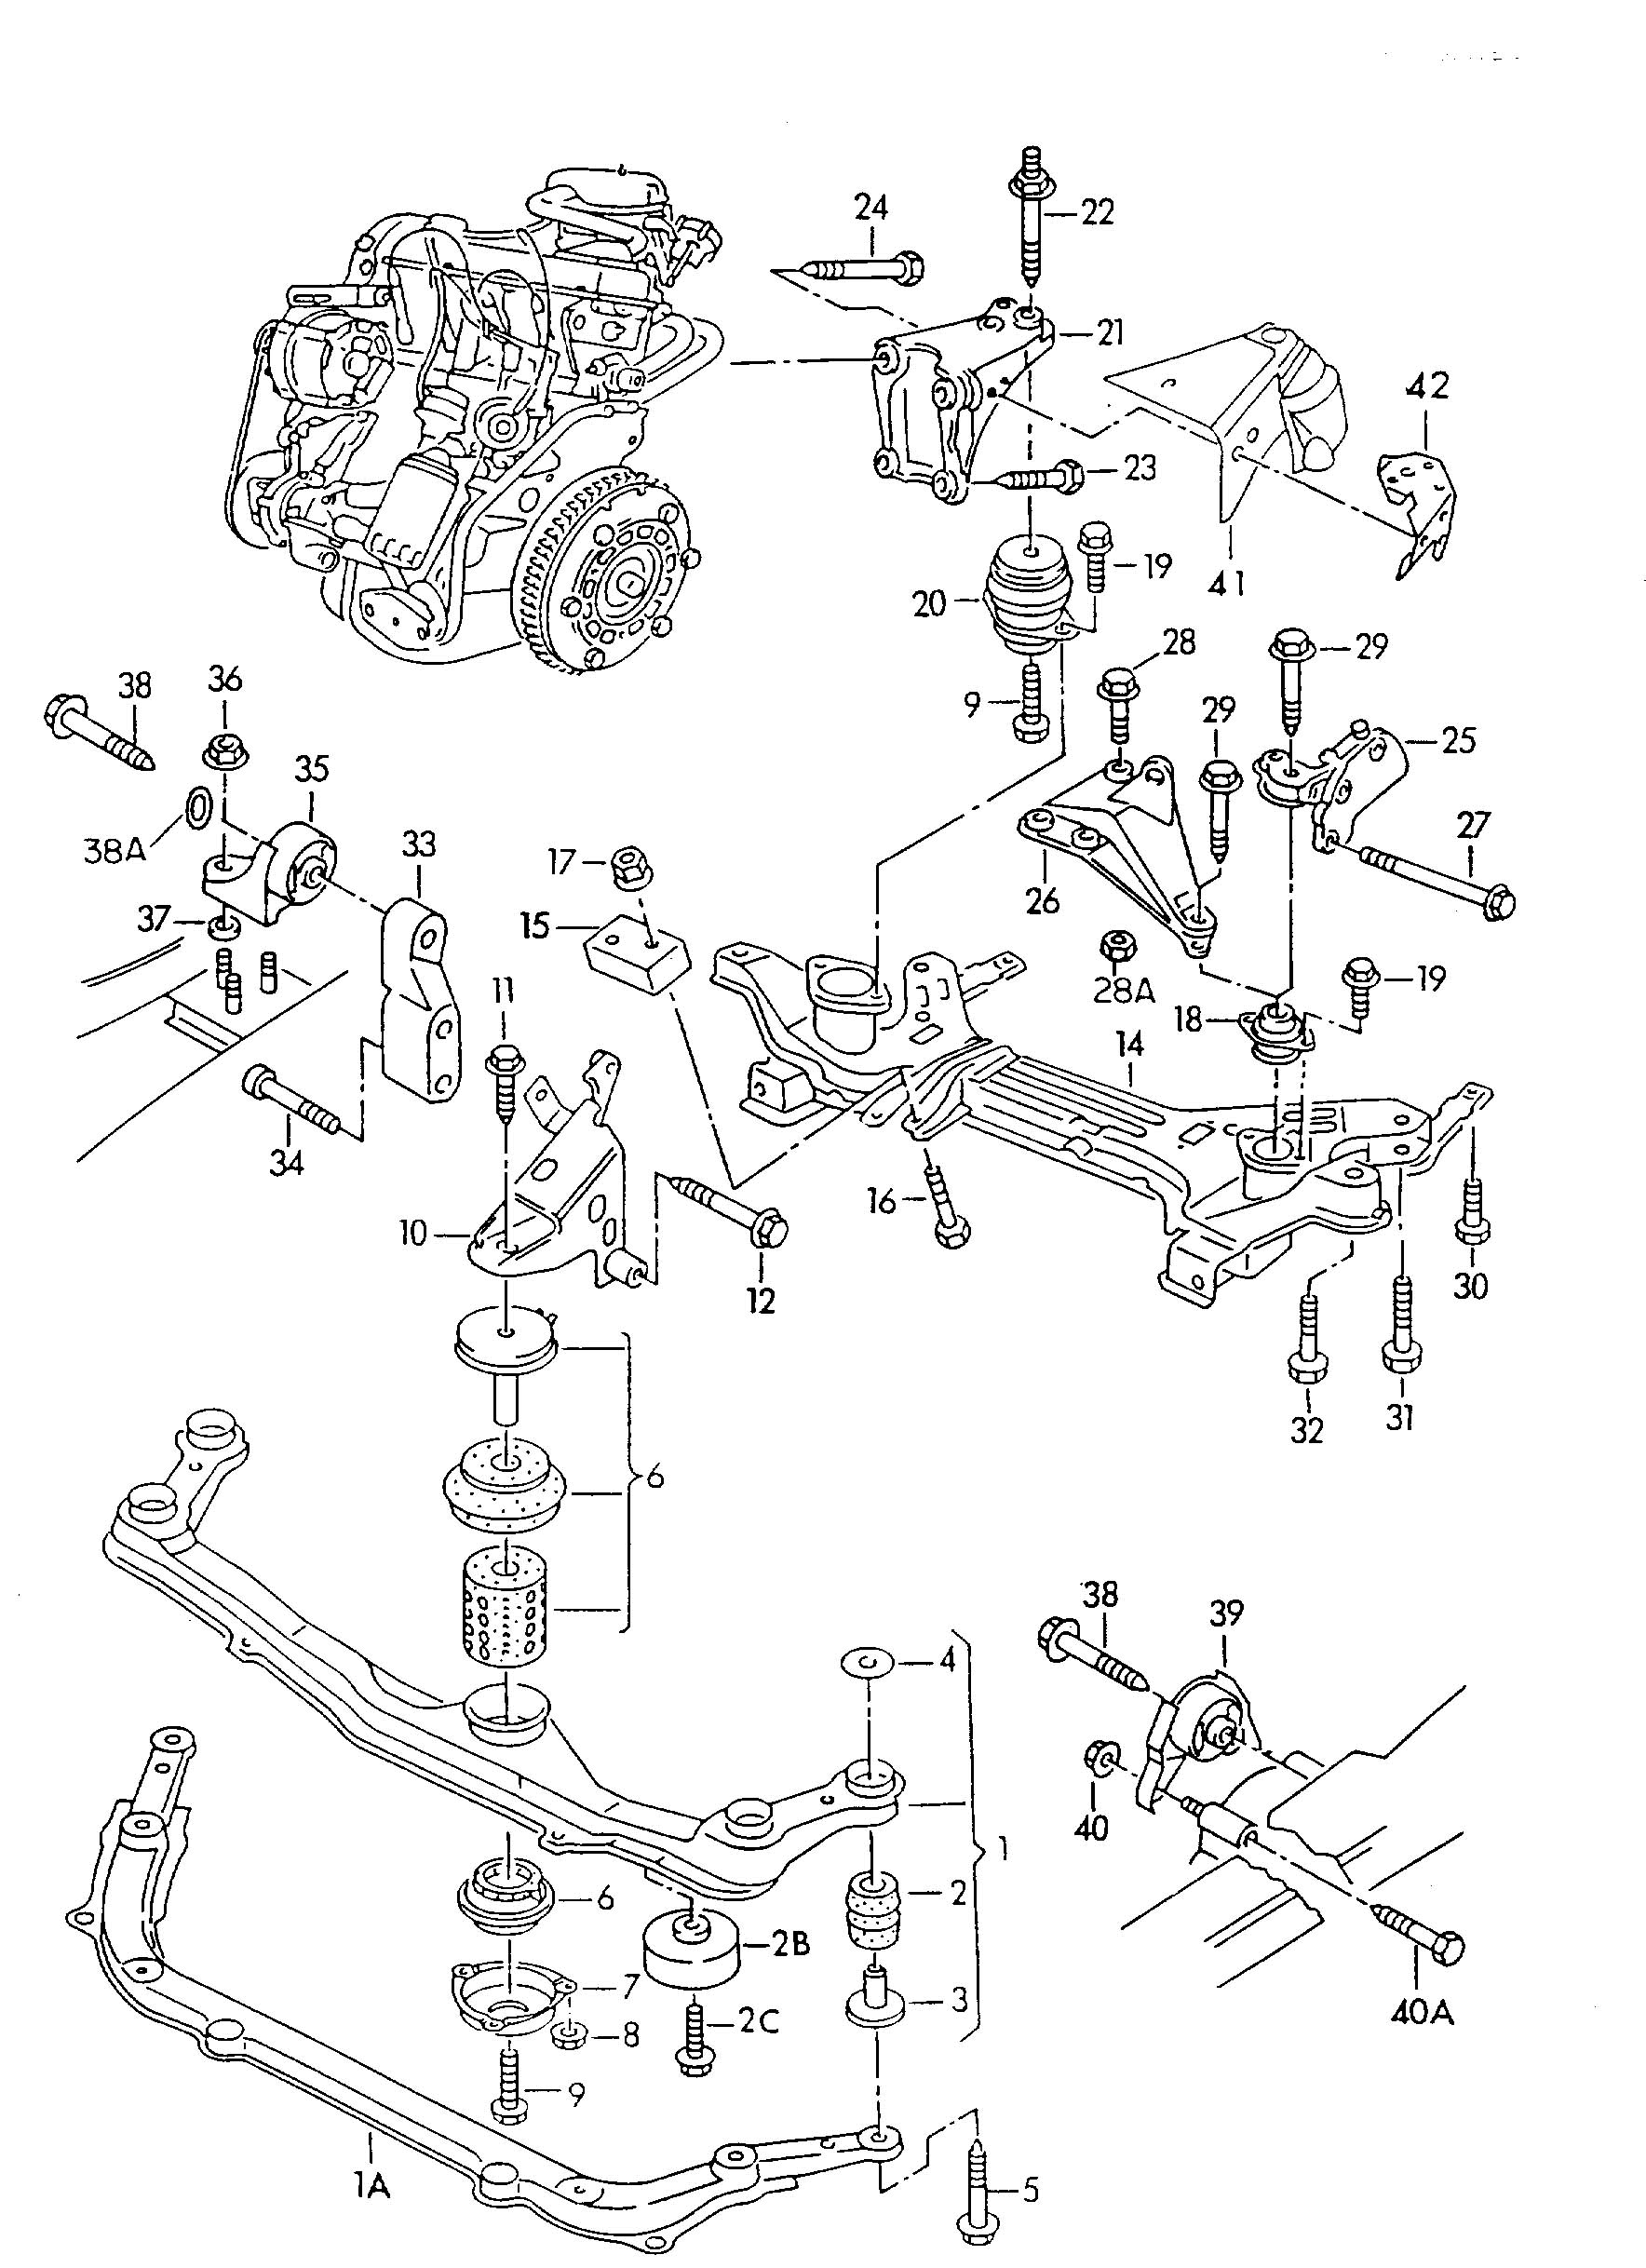 Volkswagen Jetta Body Parts Diagram